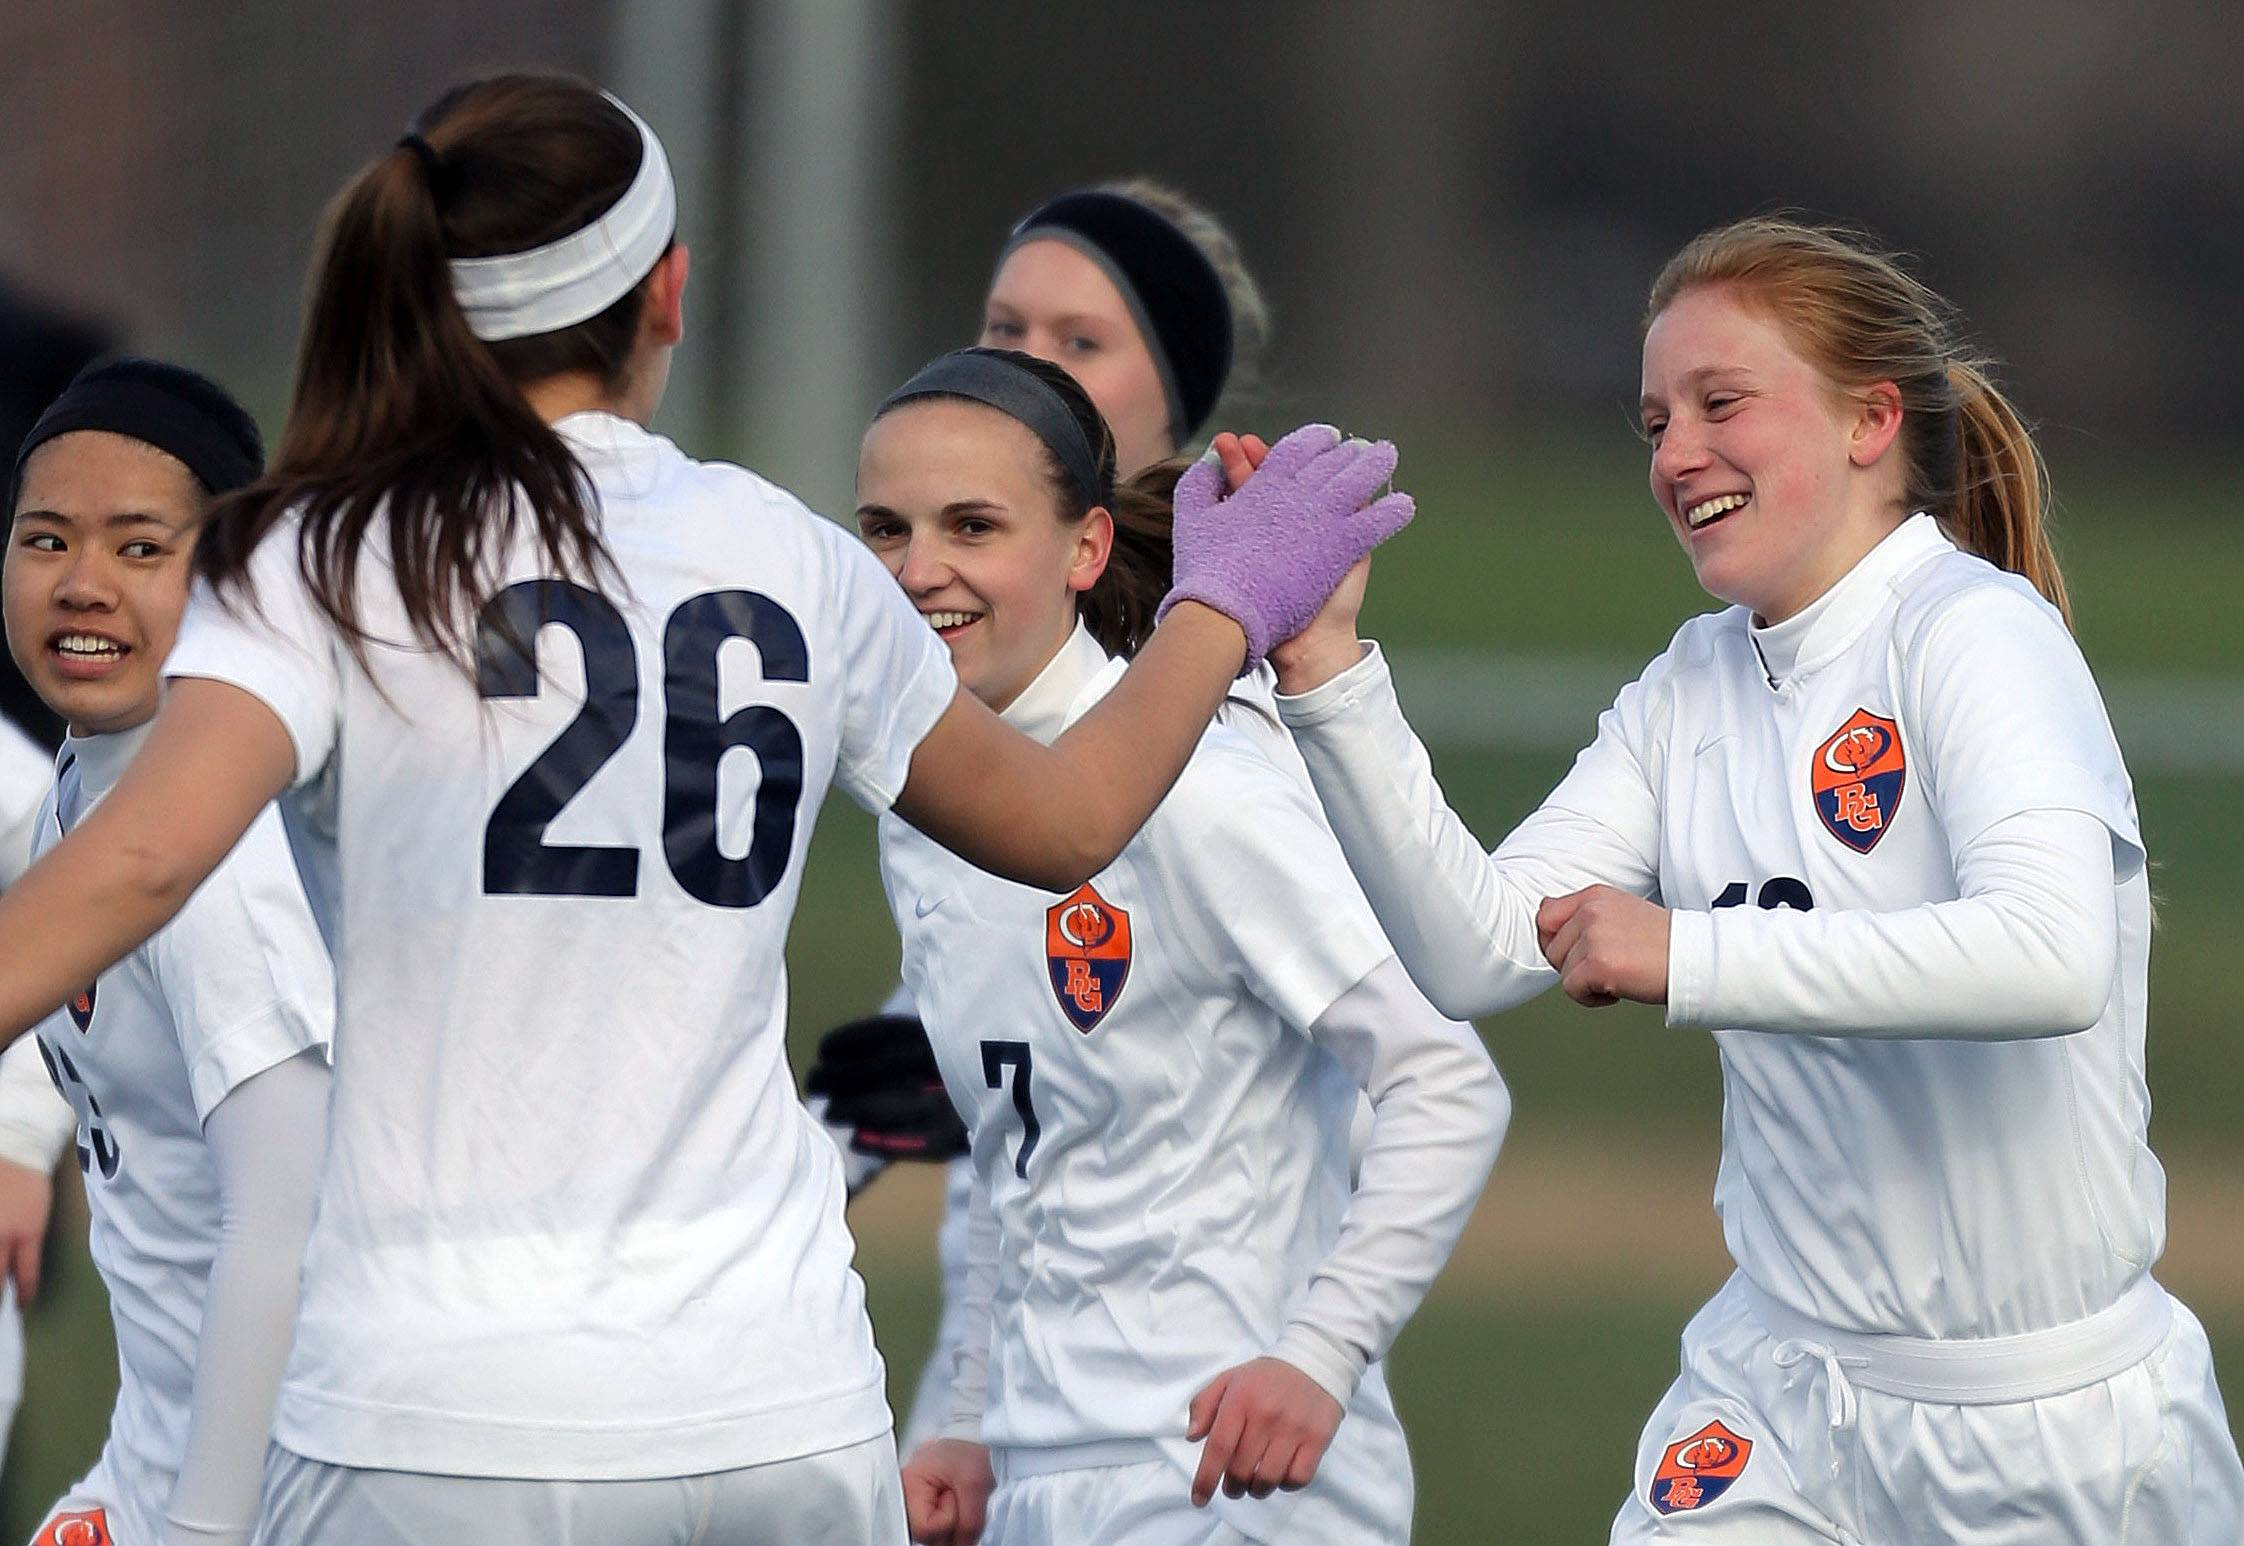 Buffalo Grove's Allie Ingham, left, high-fives Kelli Zickert after her goal in the first half during their game against Warren on Tuesday at Buffalo Grove.